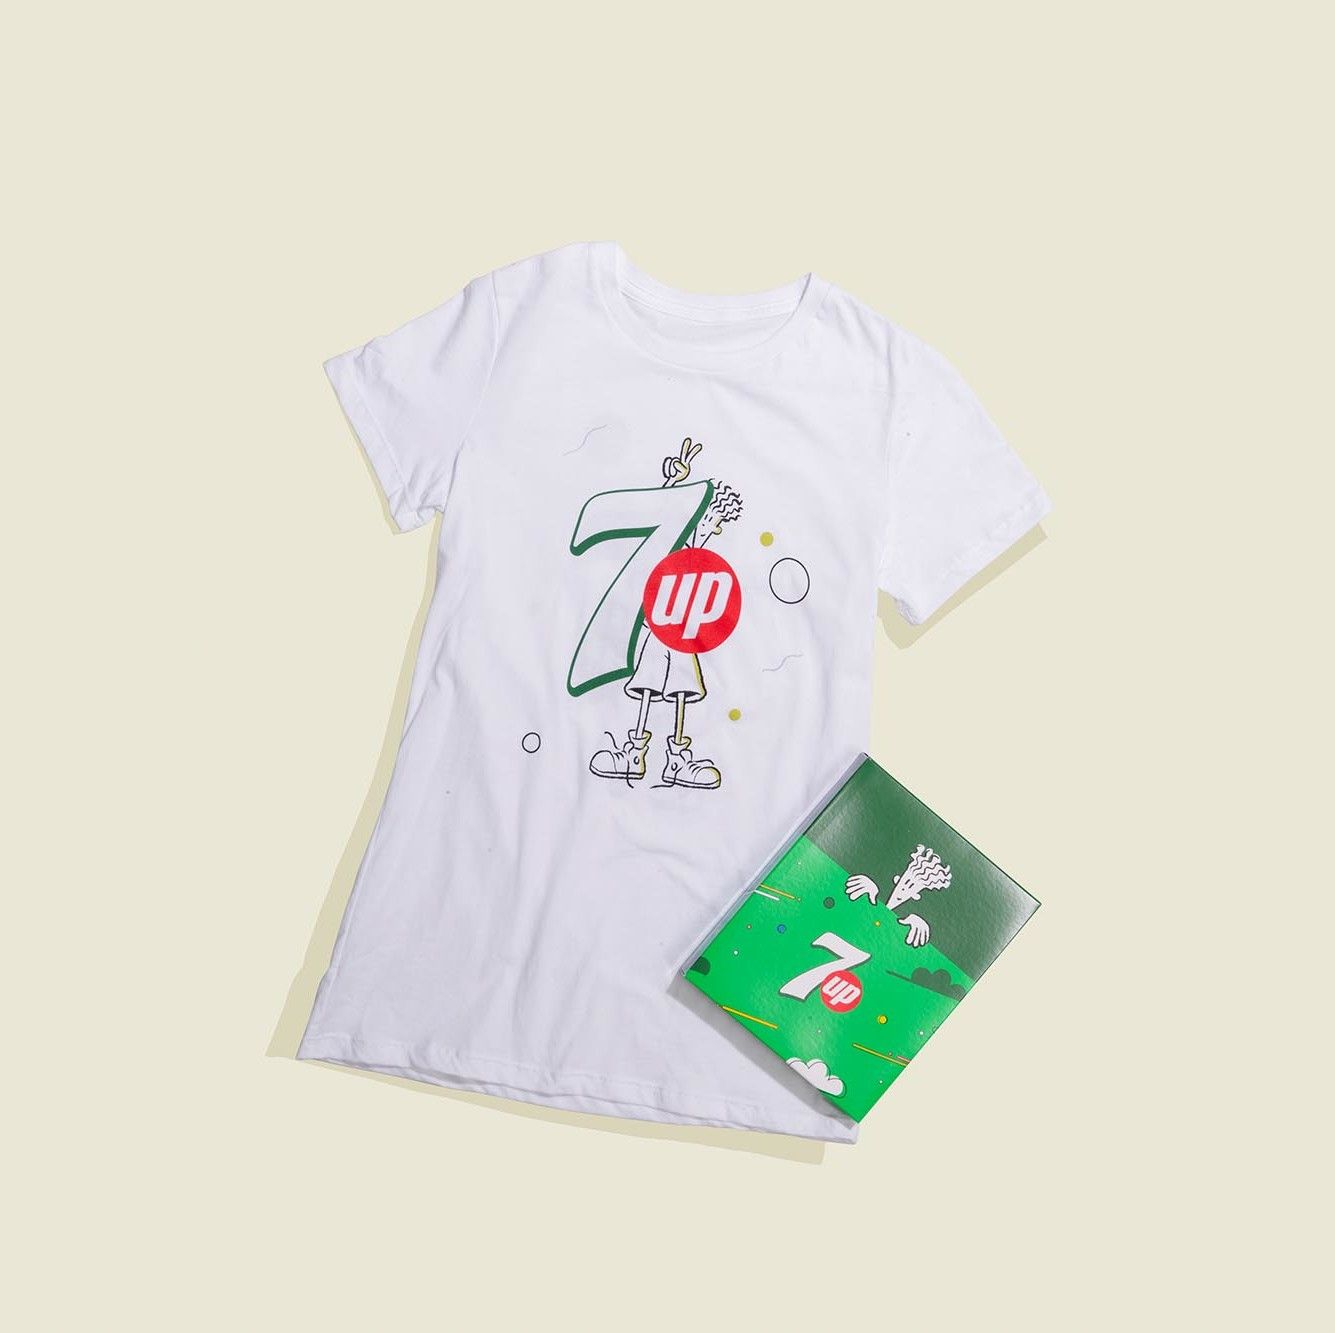 T-shirt with custom packaging